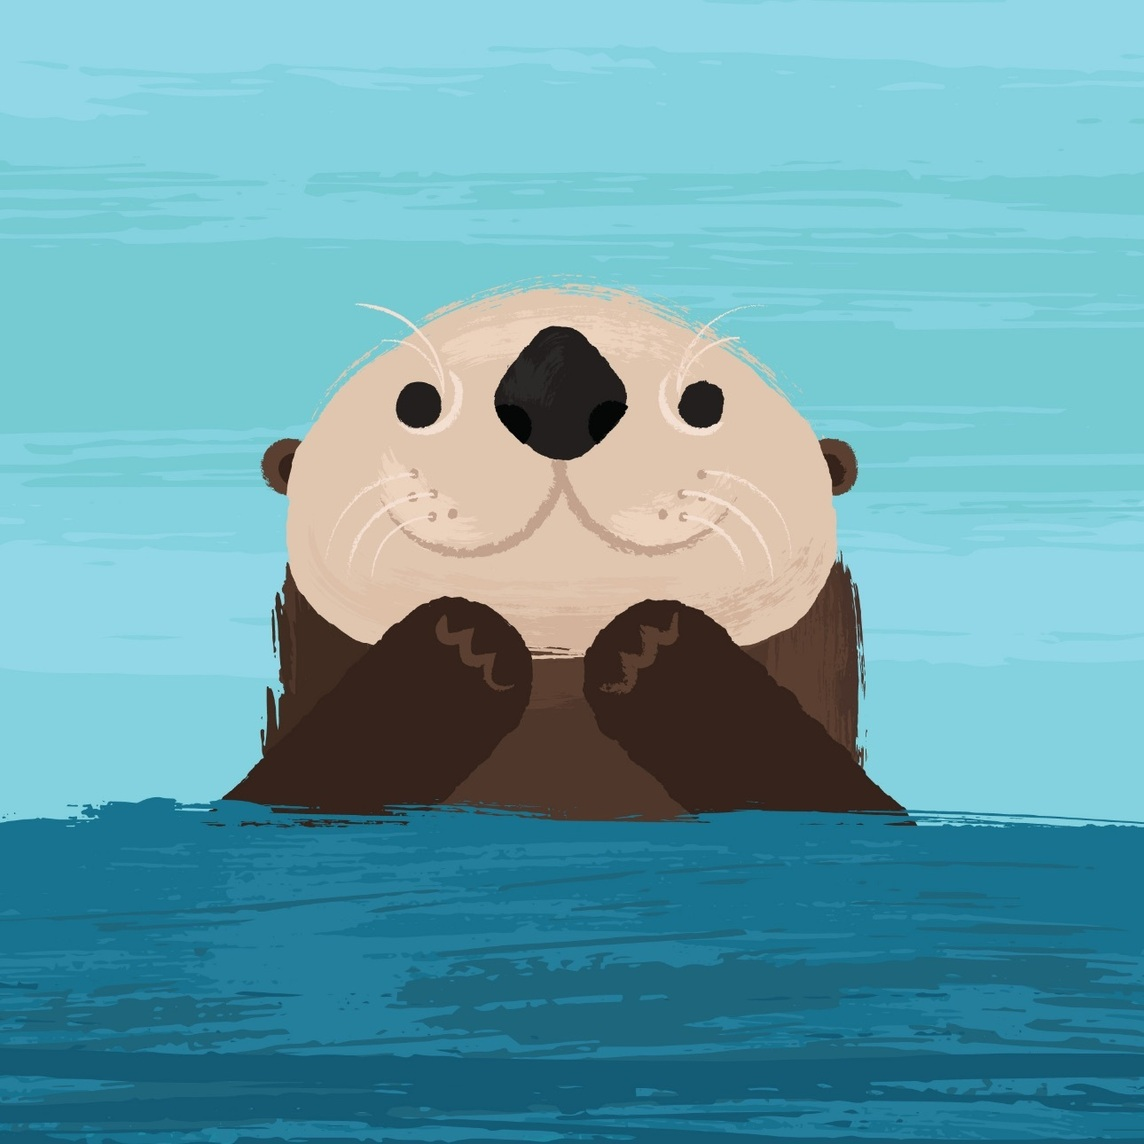 Cute illustration of an otter floating on top of the water and smiling